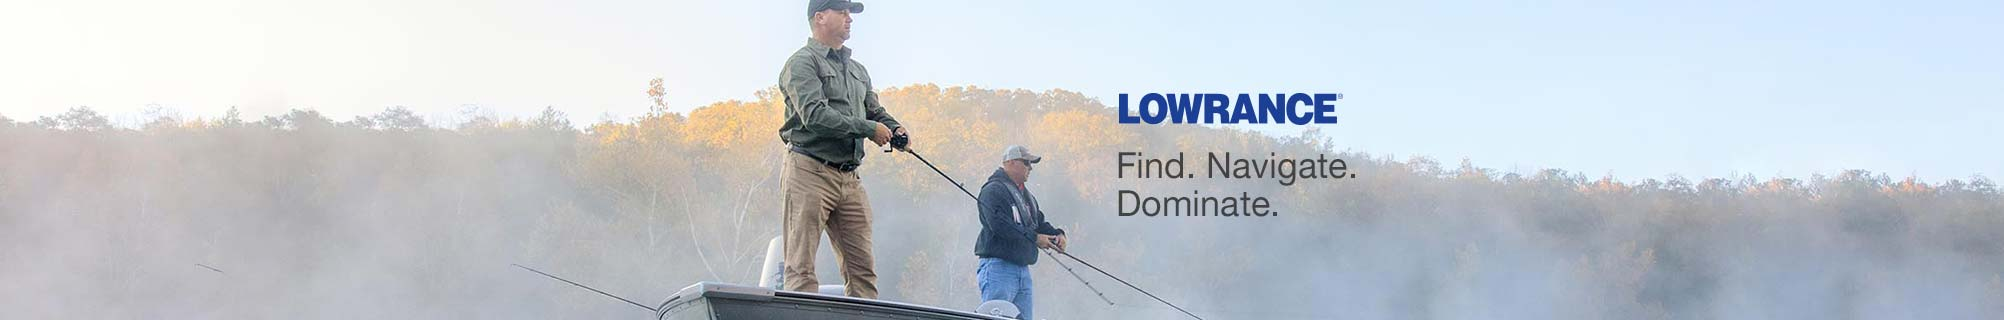 Lowrance. Find. Navigate. Dominate.